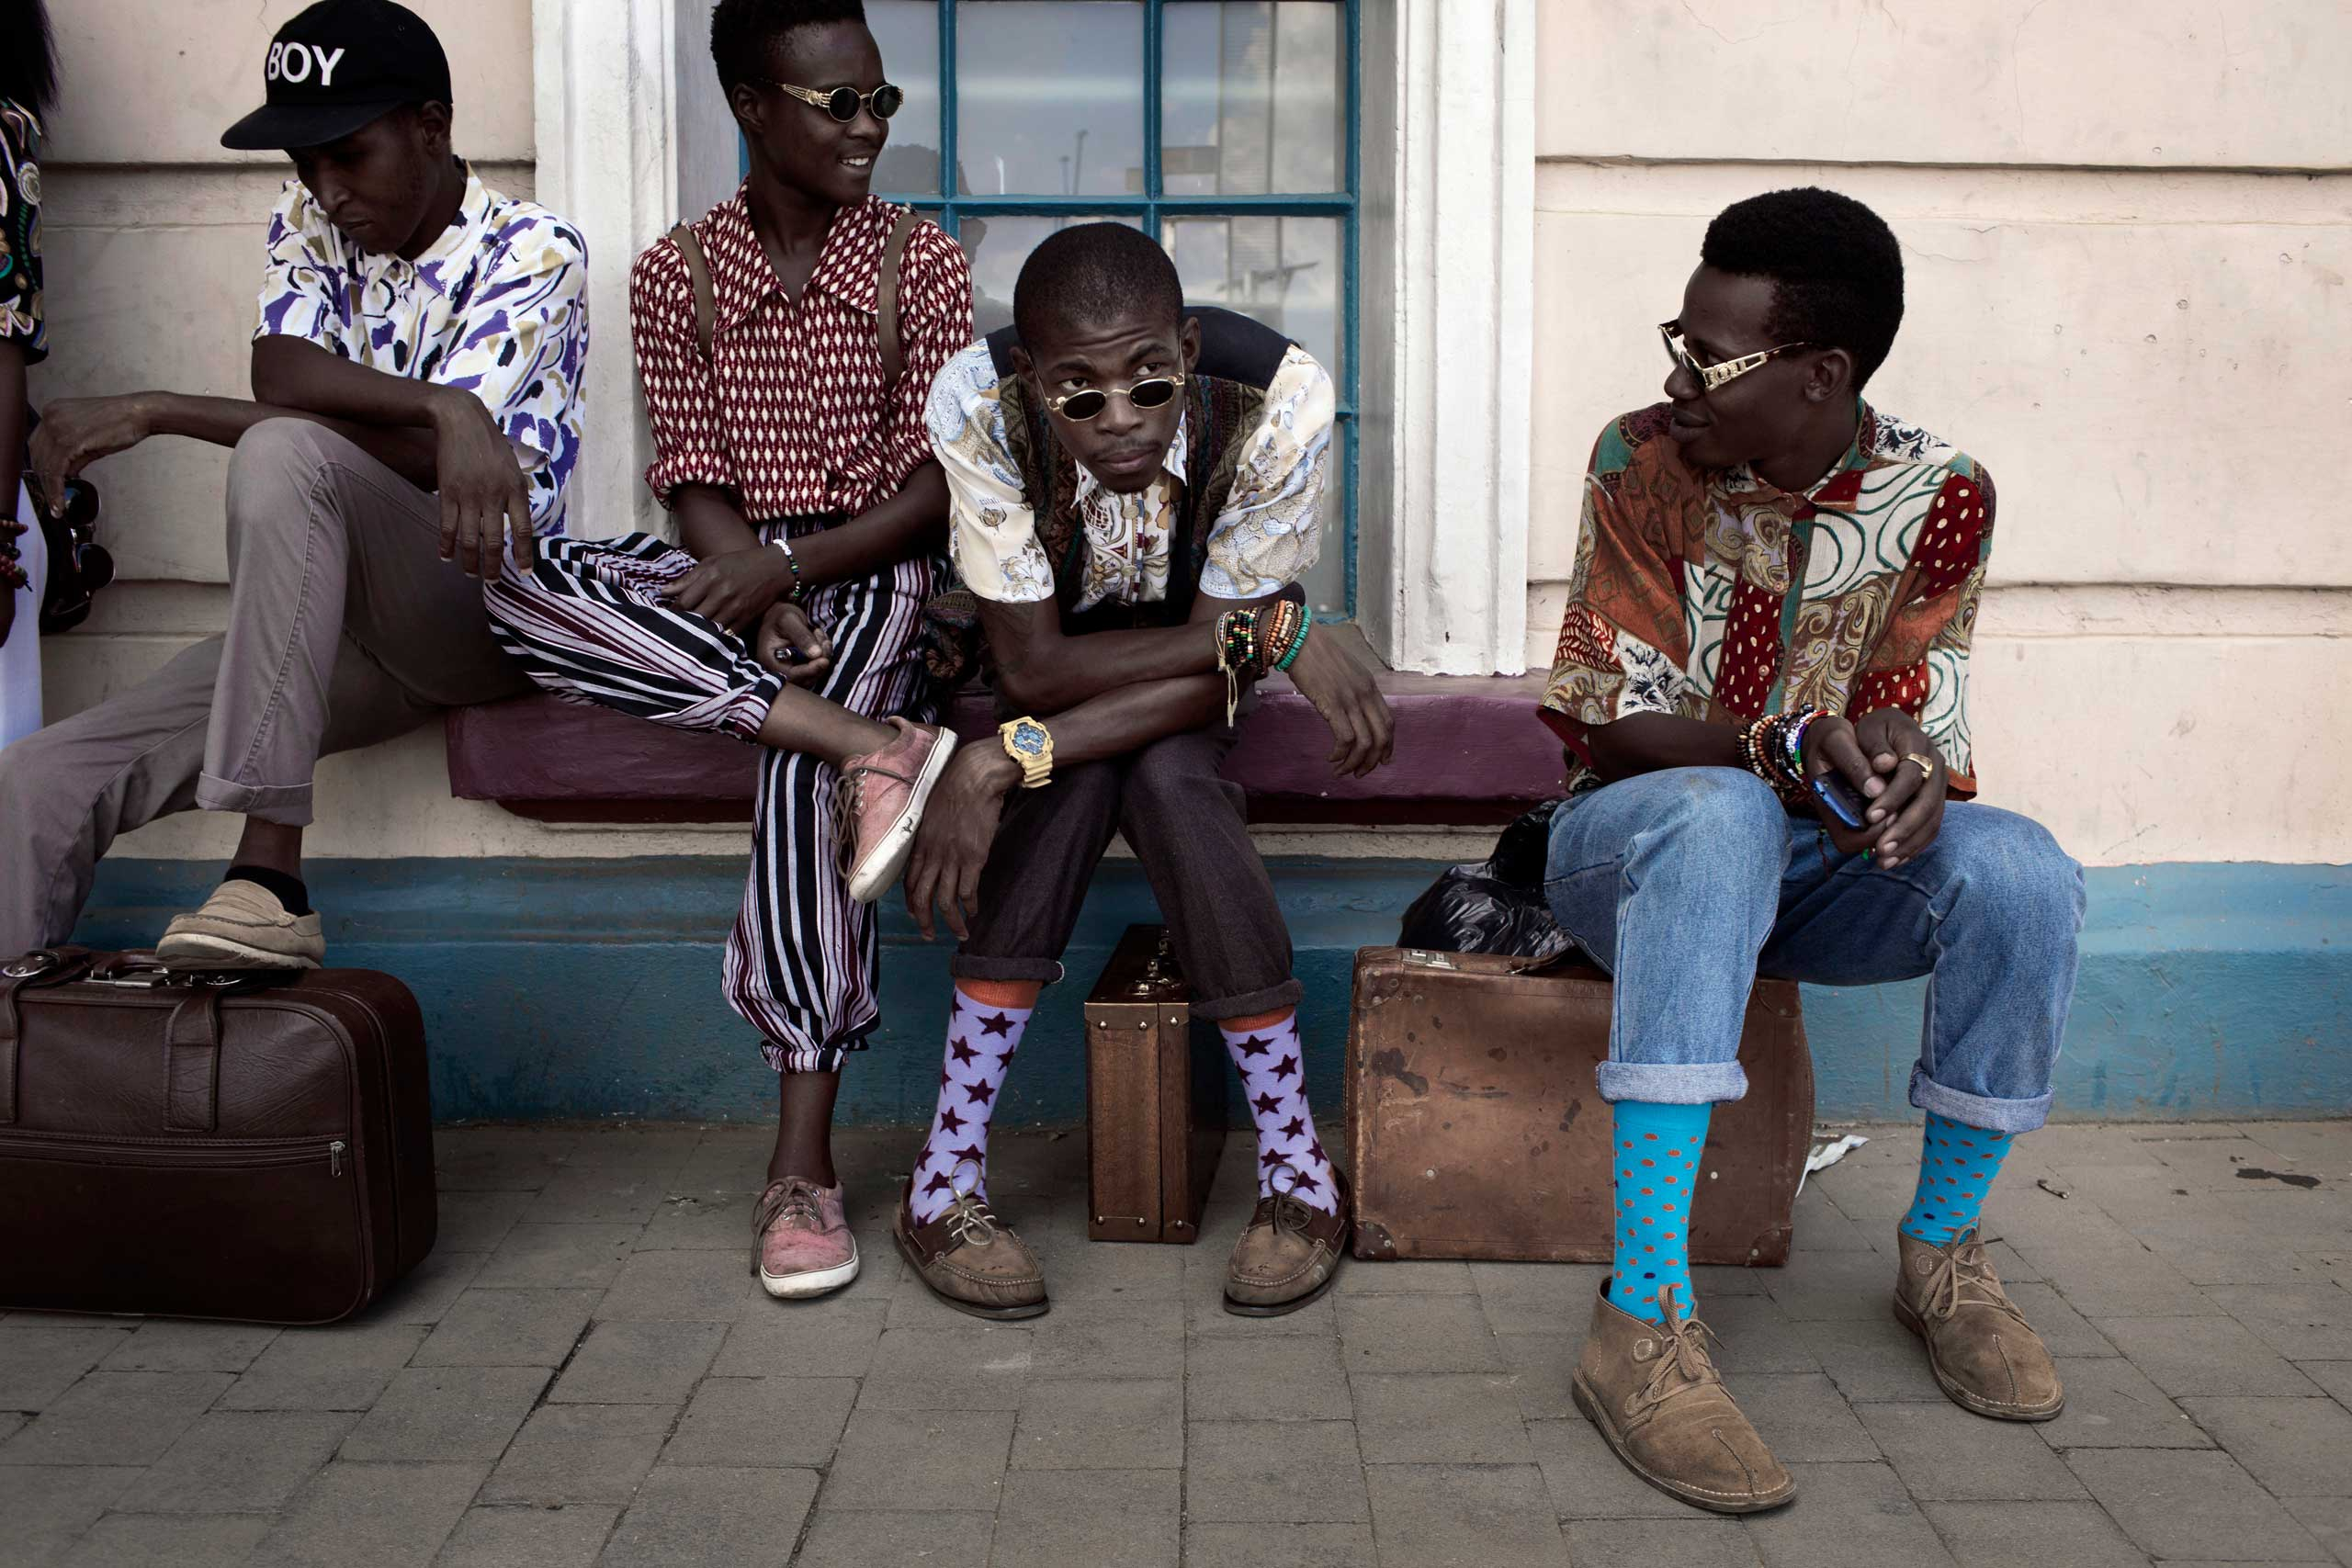 Fashionistas wait for fashion shows at Fitzgerald Square in New Town for Mercedes Benz fashion week on March 9, 2013 held in Johannesburg, South Africa.